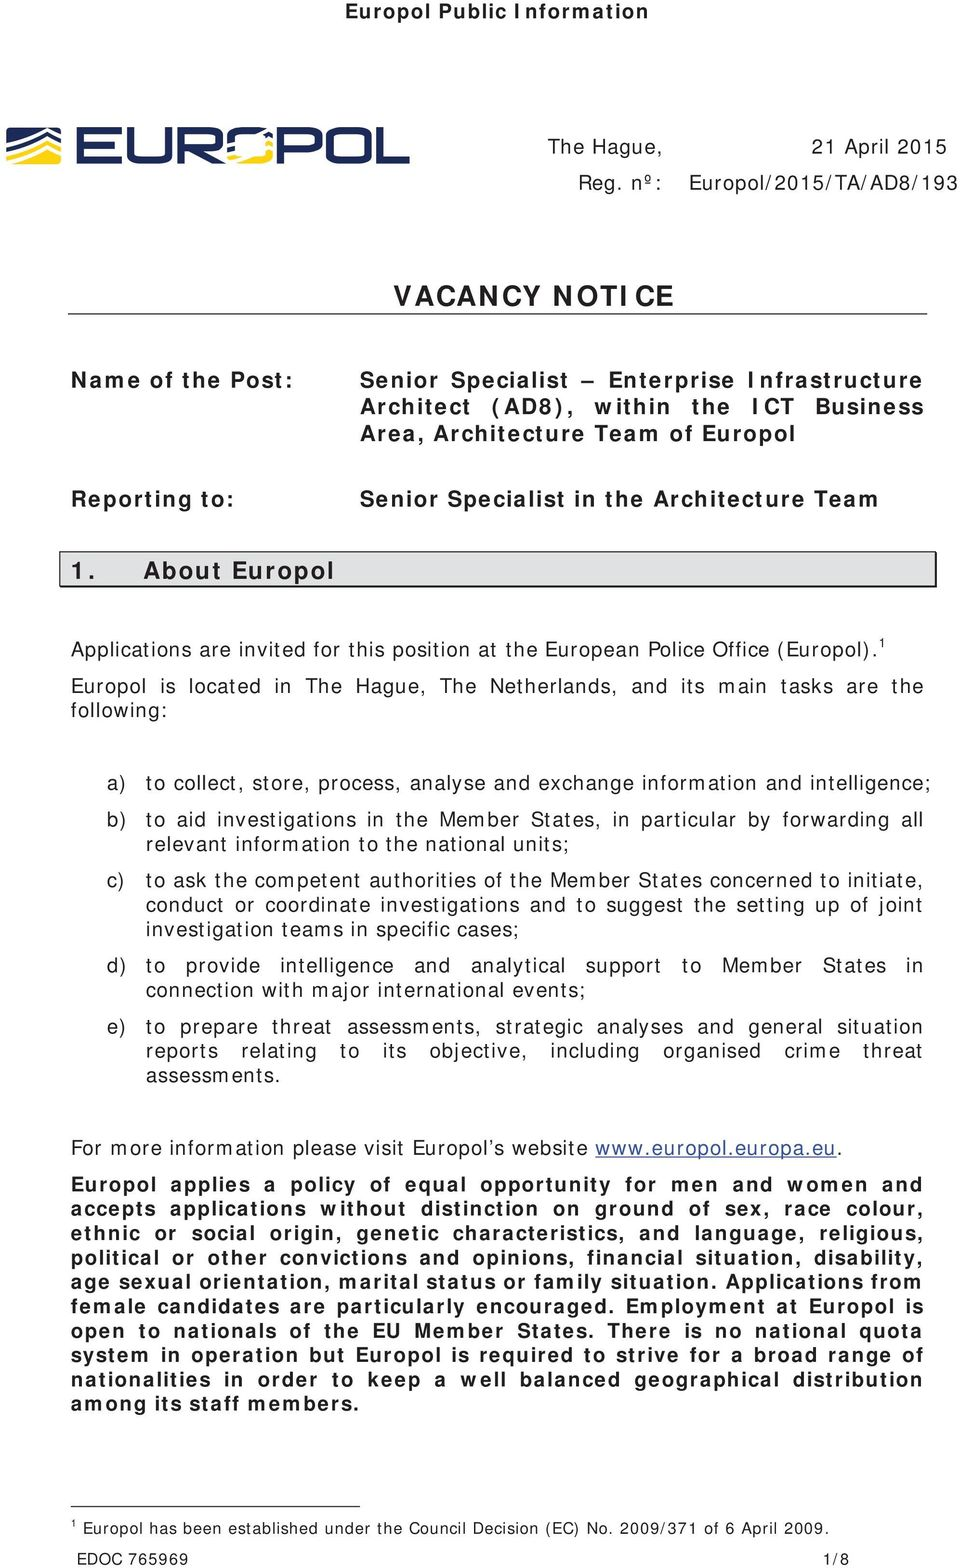 Senior Specialist in the Architecture Team 1. About Europol Applications are invited for this position at the European Police Office (Europol).